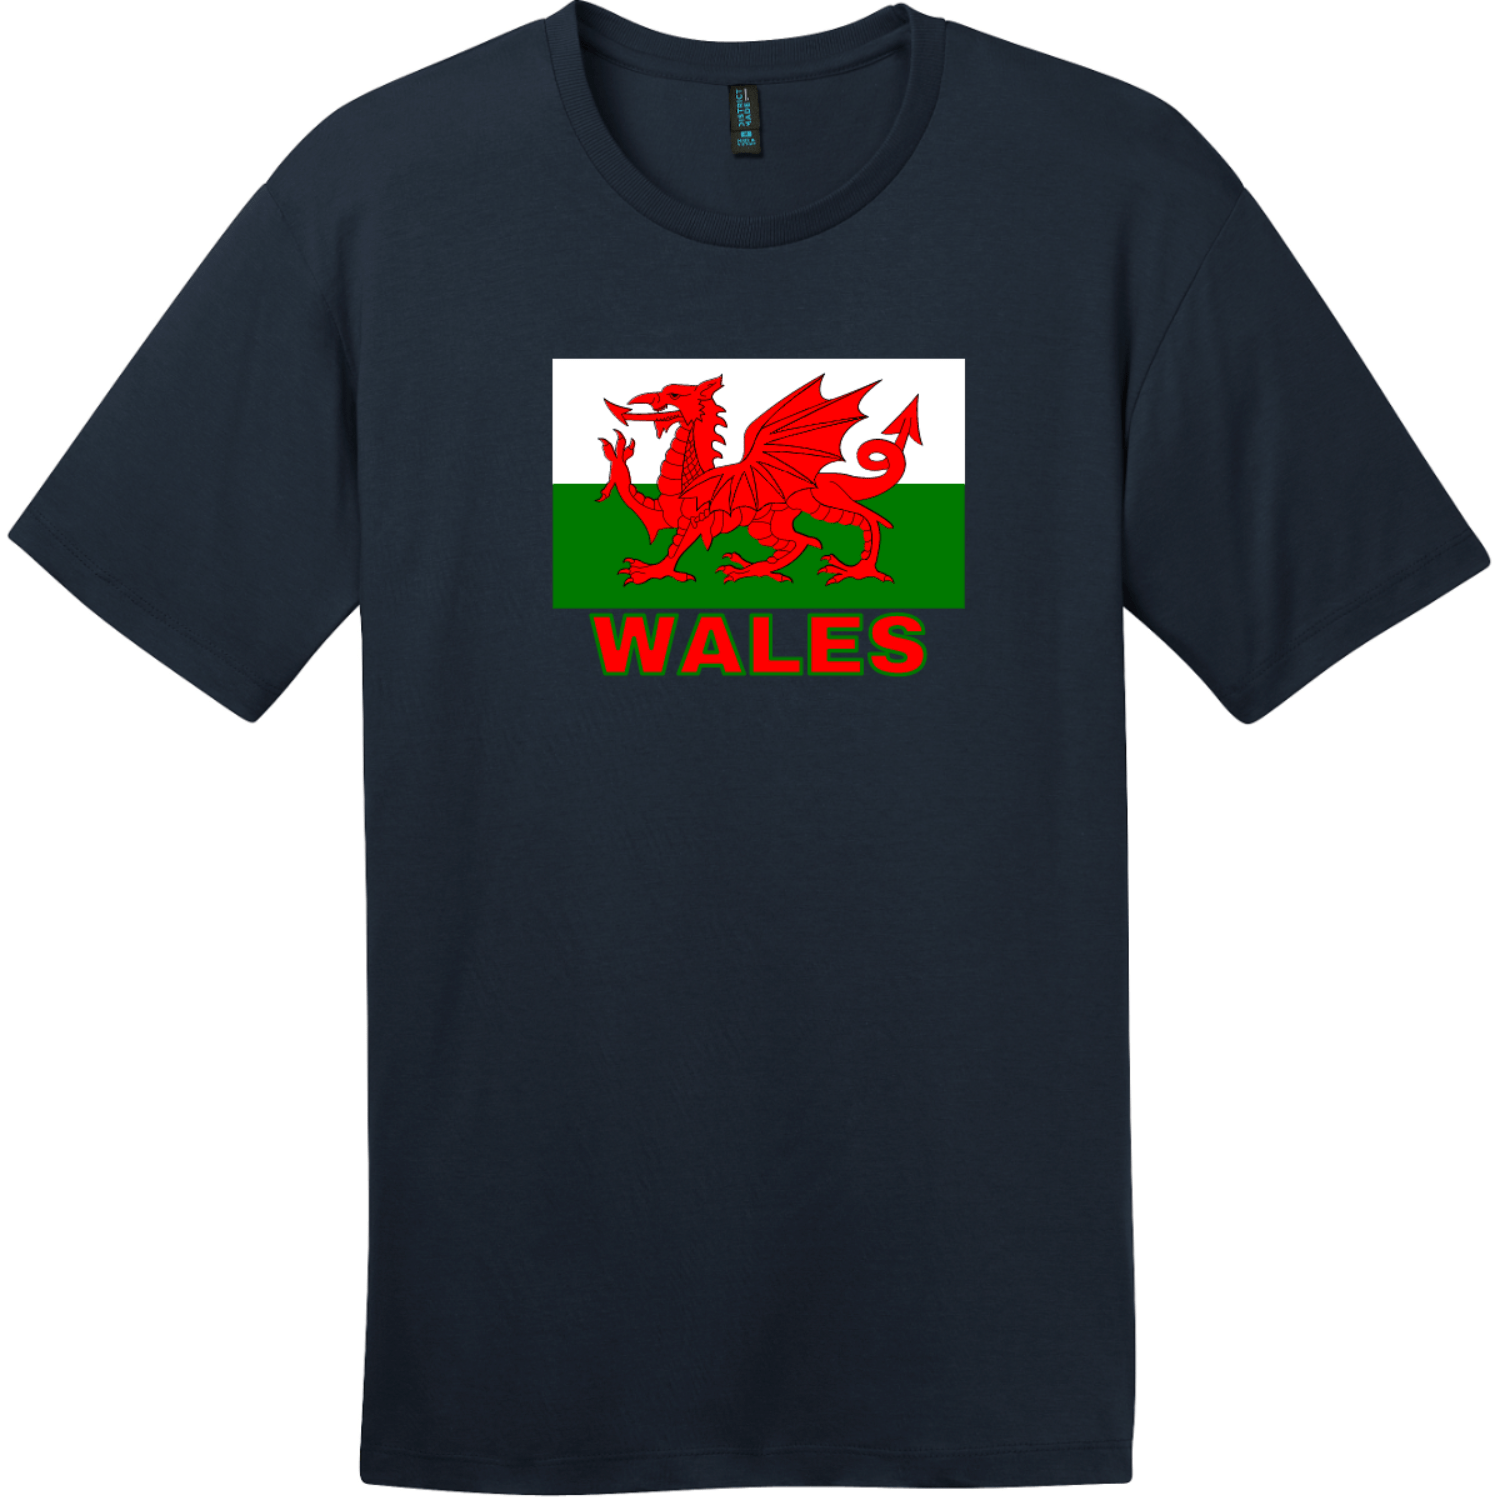 Wales Flag T-Shirt New Navy District Perfect Weight Tee DT104